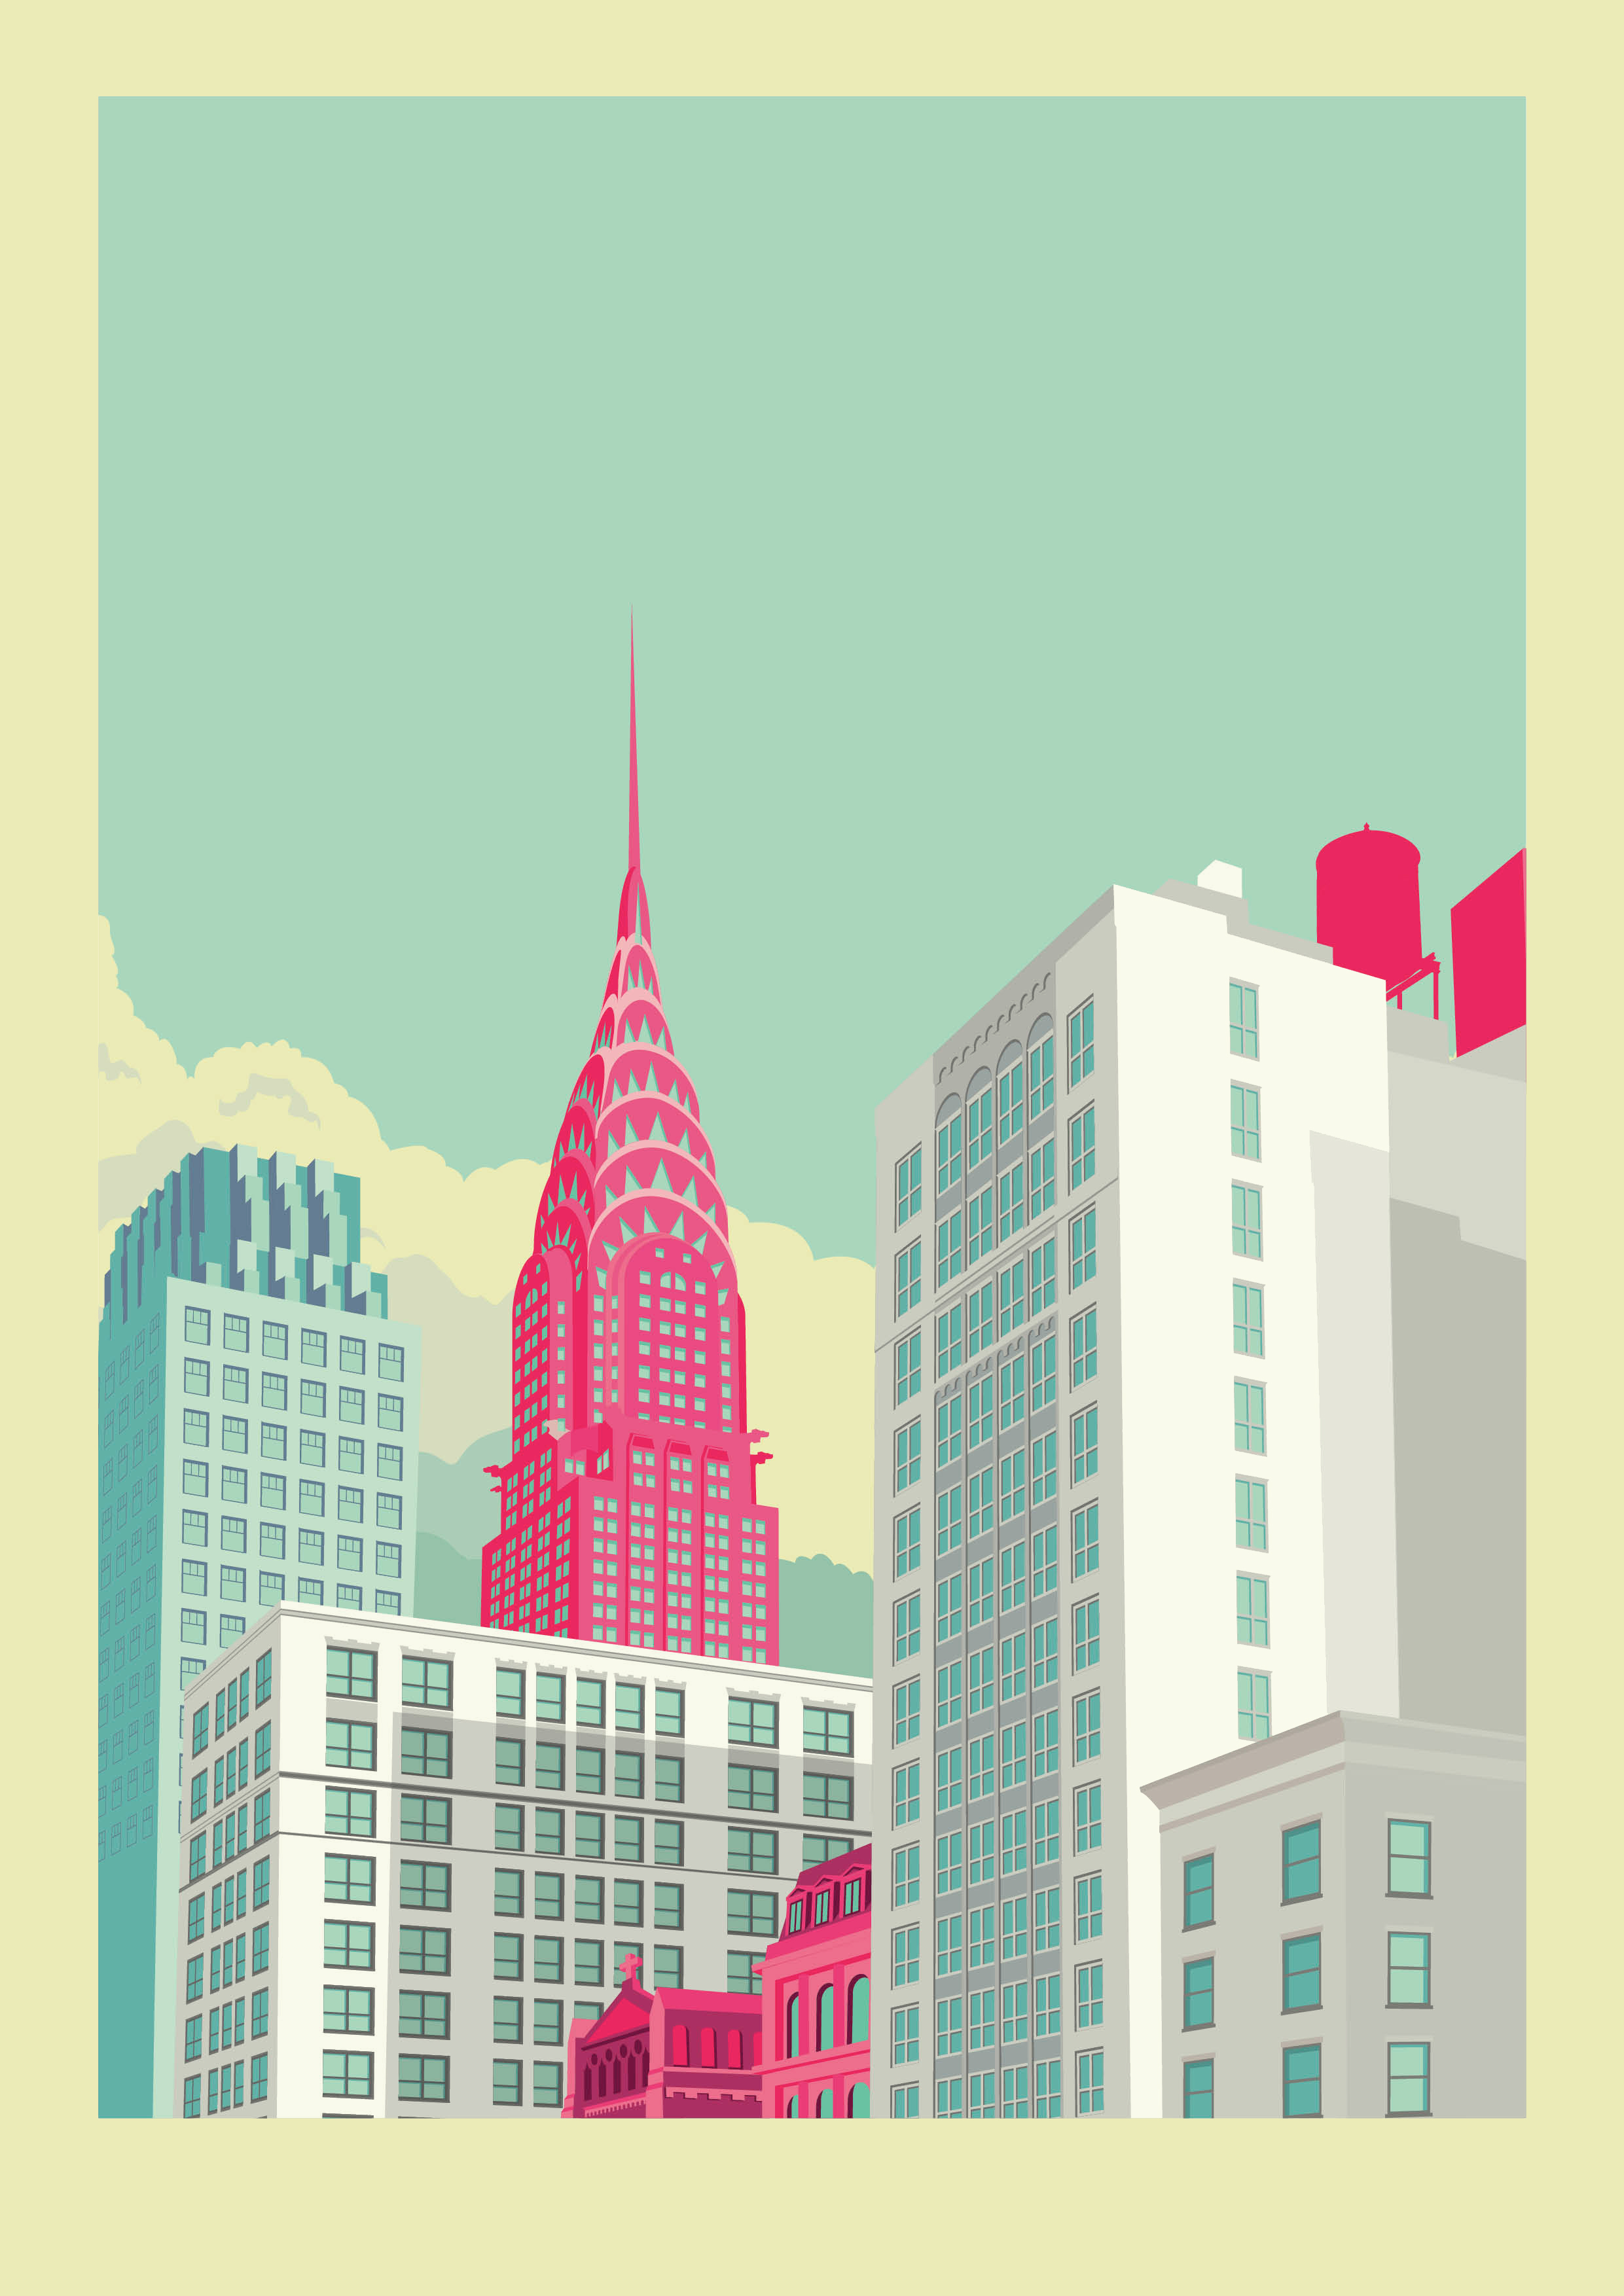 Populaire New York illustrations on Behance ZY44